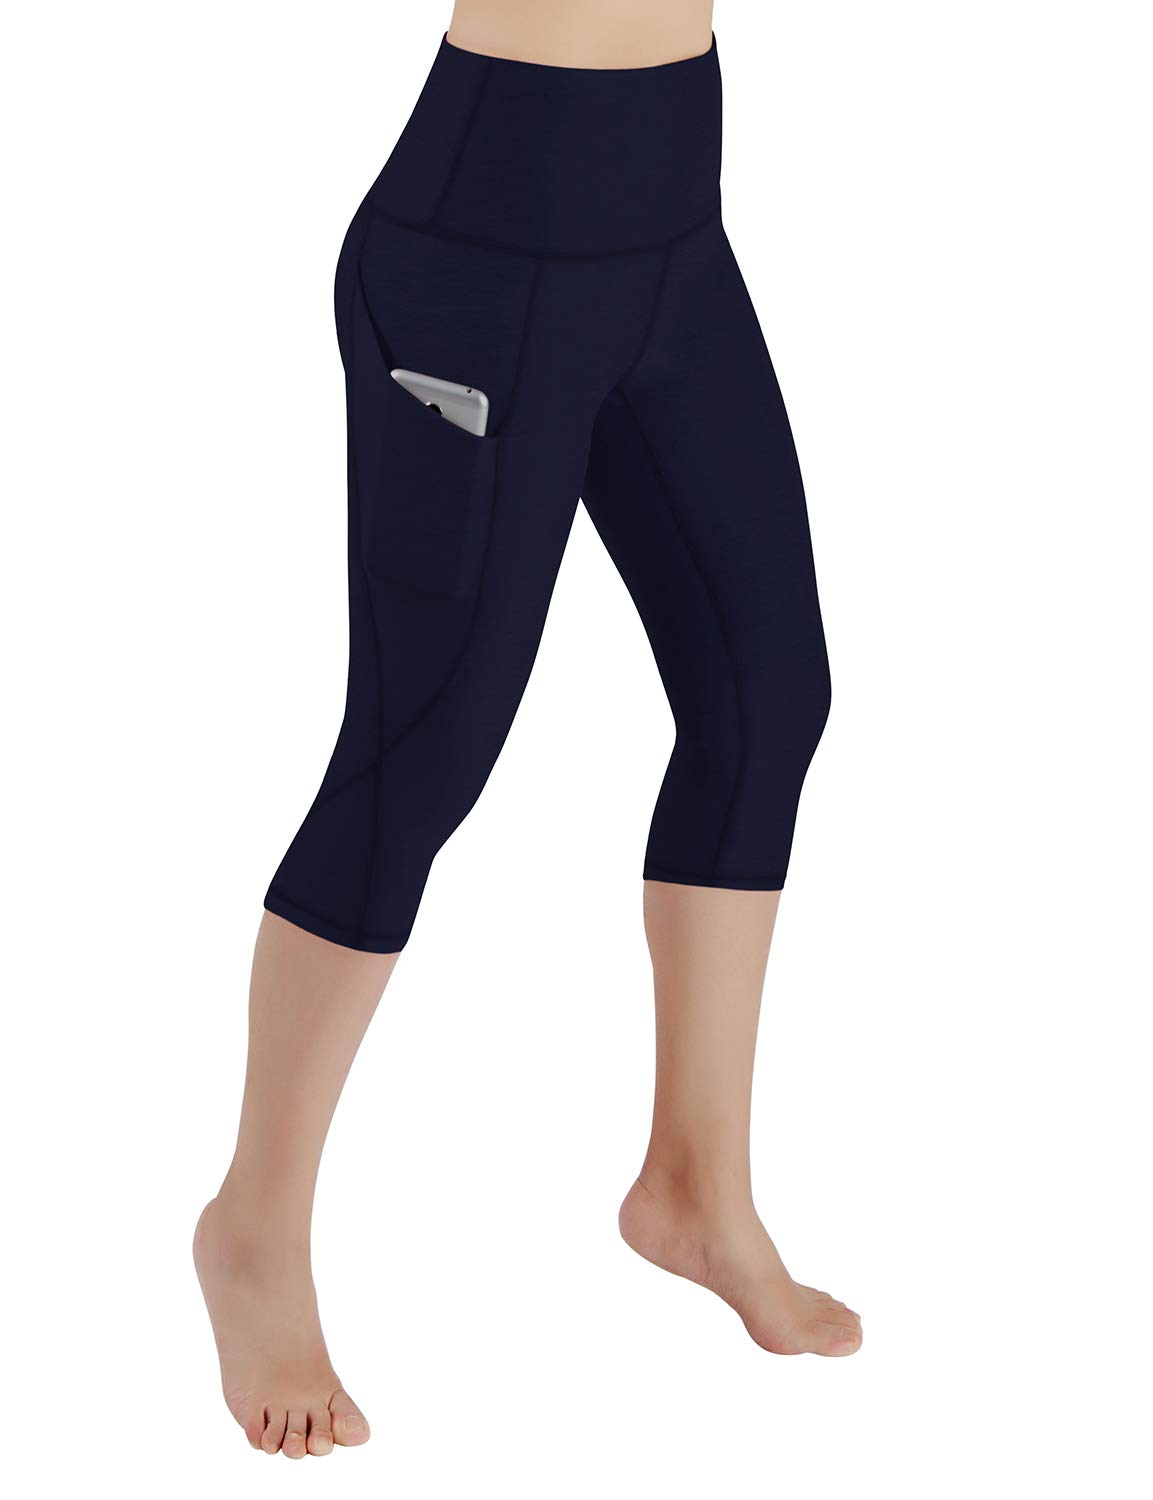 ODODOS Women's High Waist Yoga Capris with Pockets,Tummy Control,Workout Capris Running 4 Way Stretch Yoga Leggings with Pockets,Navy,Small by ODODOS